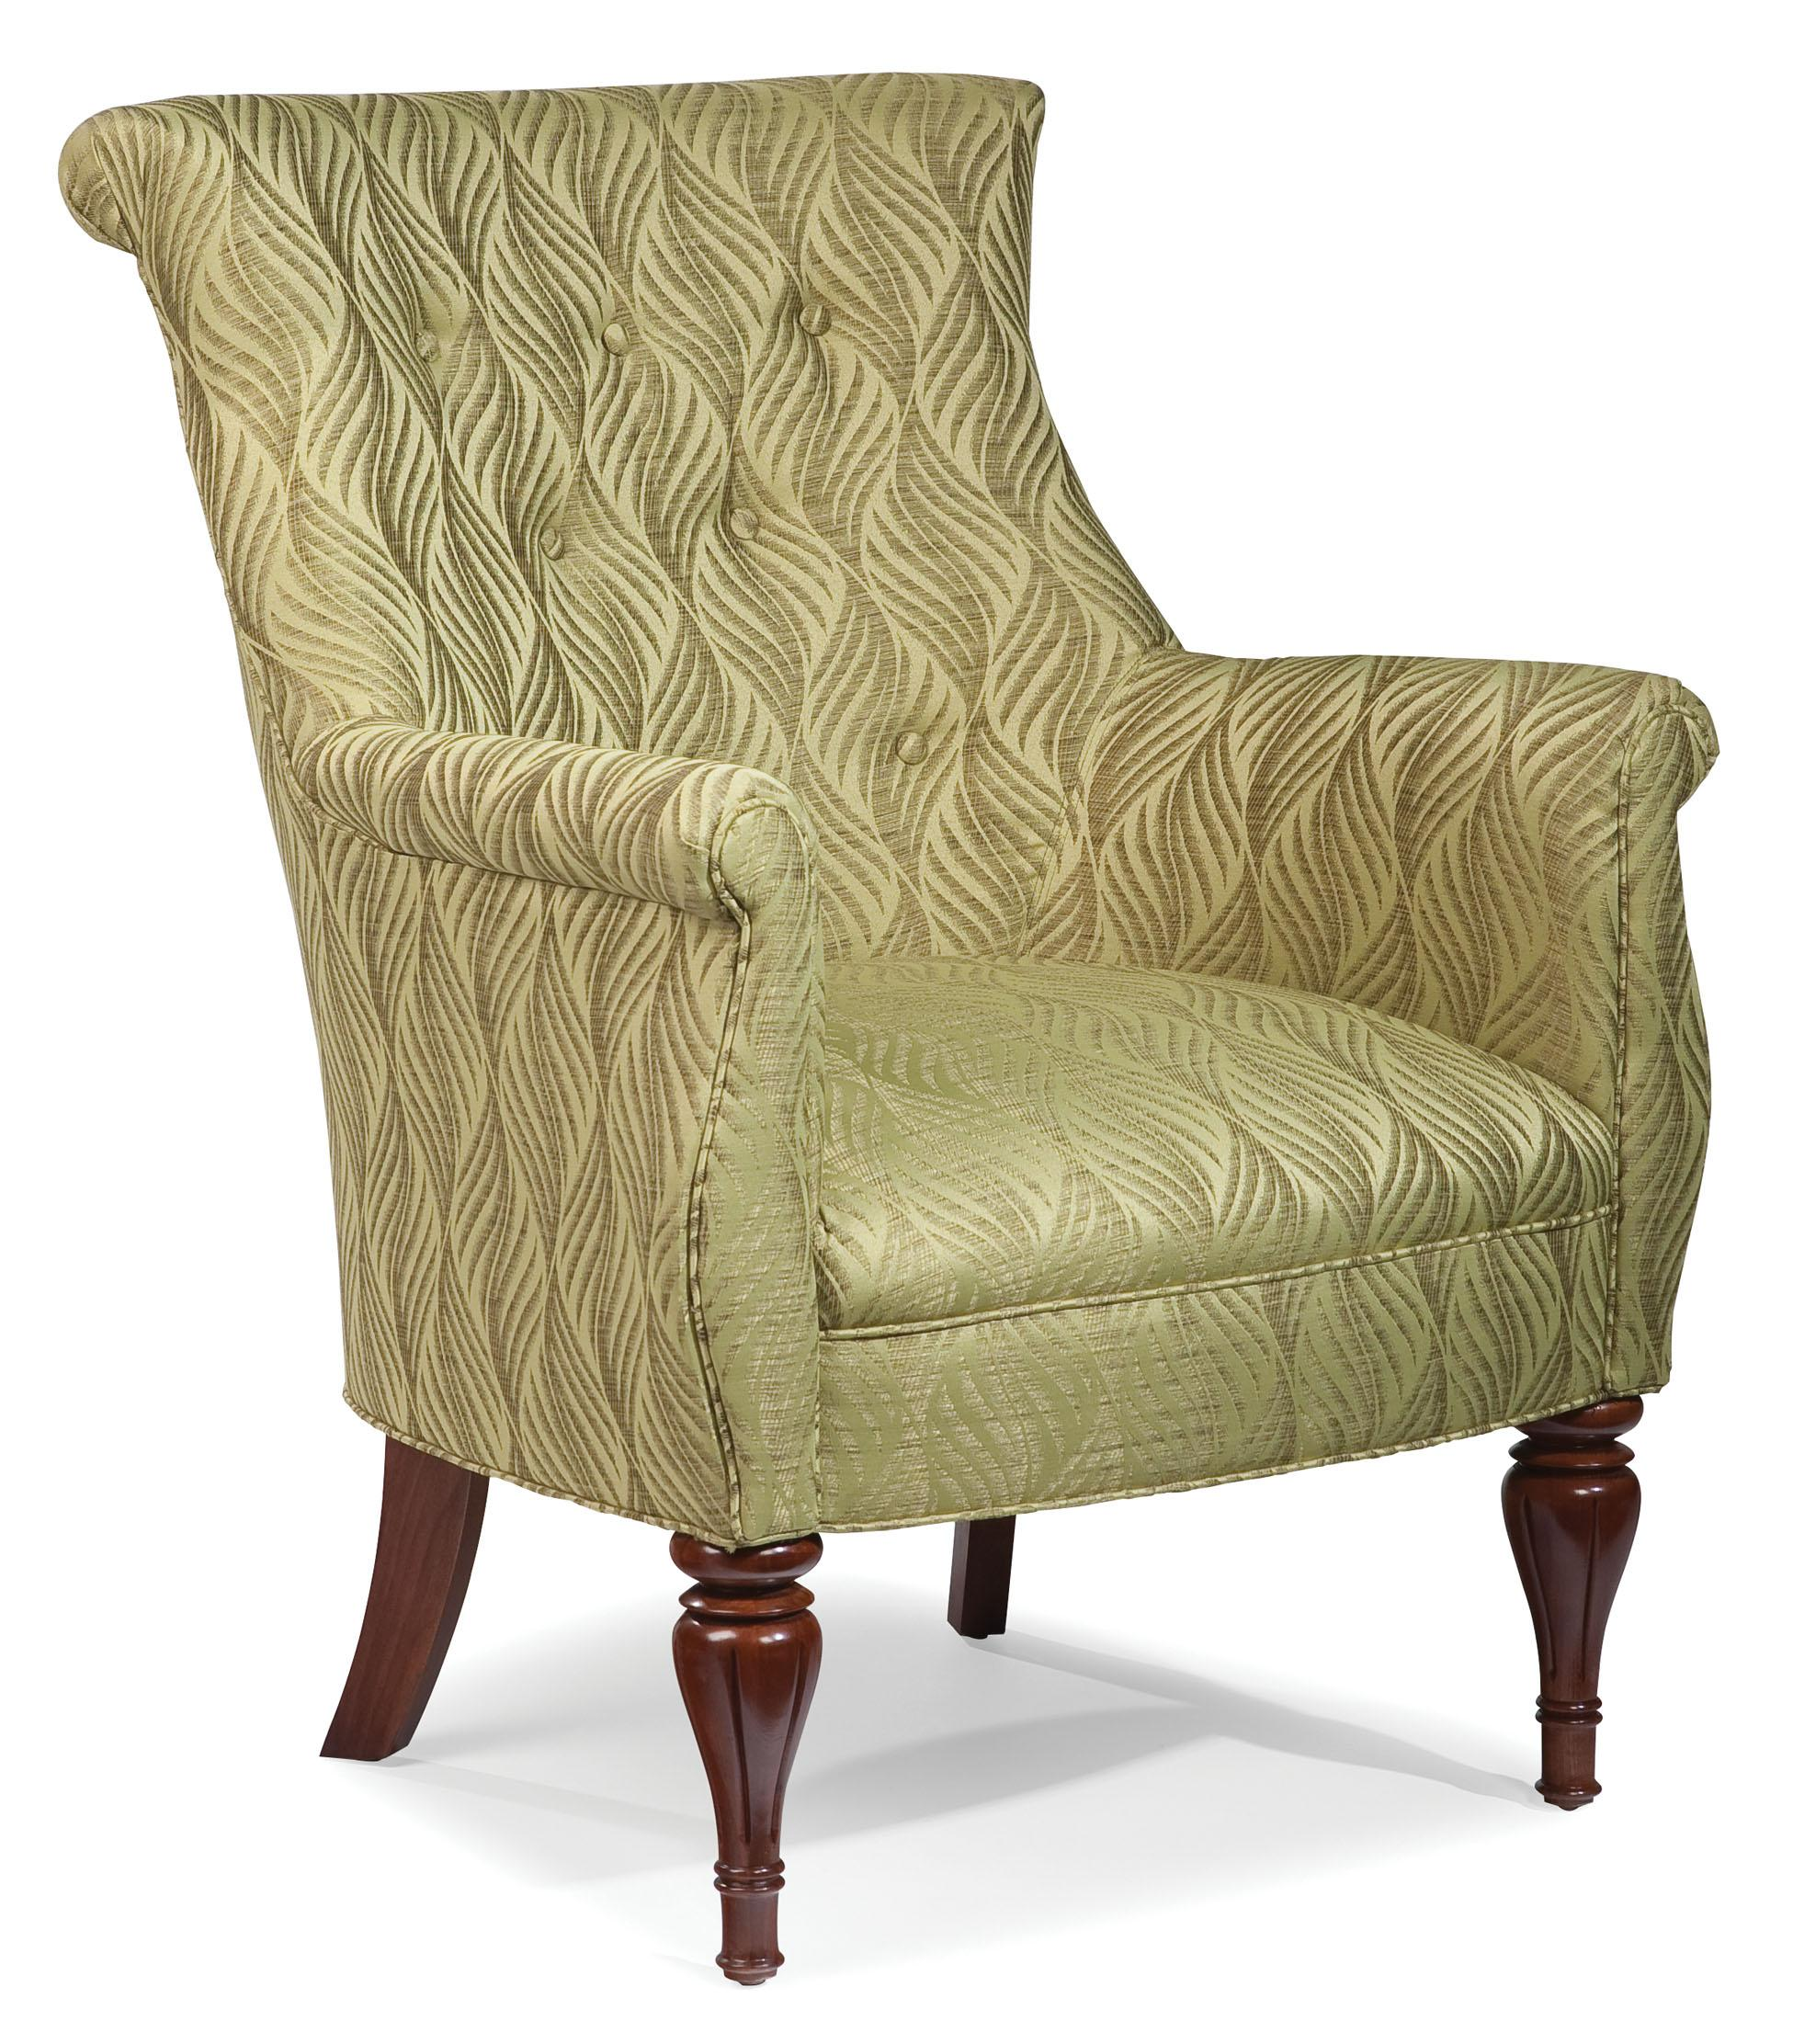 Fairfield Chairs Upholstered Accent Chair - Item Number: 5206-01